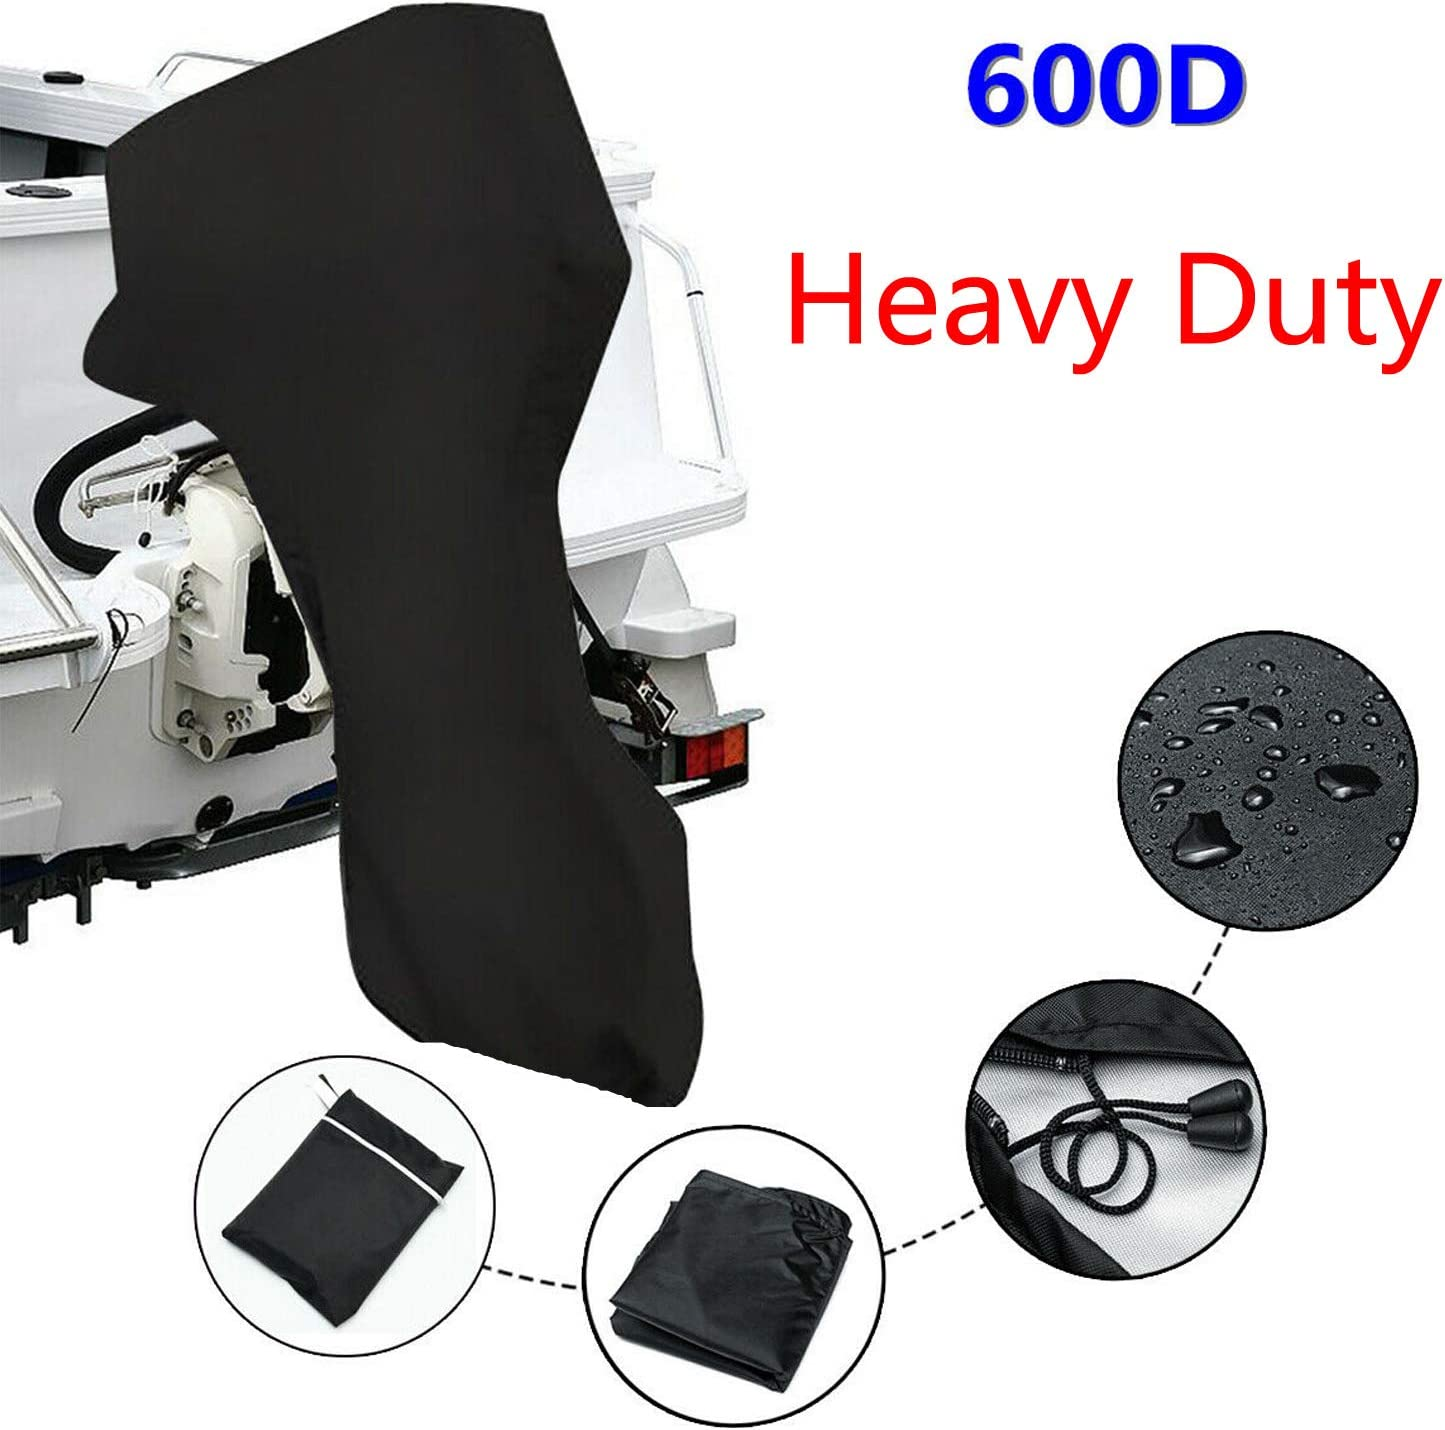 ConPus Boat Motor Covers 60HP - 100HP - 150HP Full Outboard Motor Cover with 600D Heavy Duty Oxford Fabric + Extra PVC Coating,Waterproof Outboard Engine for mercury motor cover boat 60hp 100hp 150hp